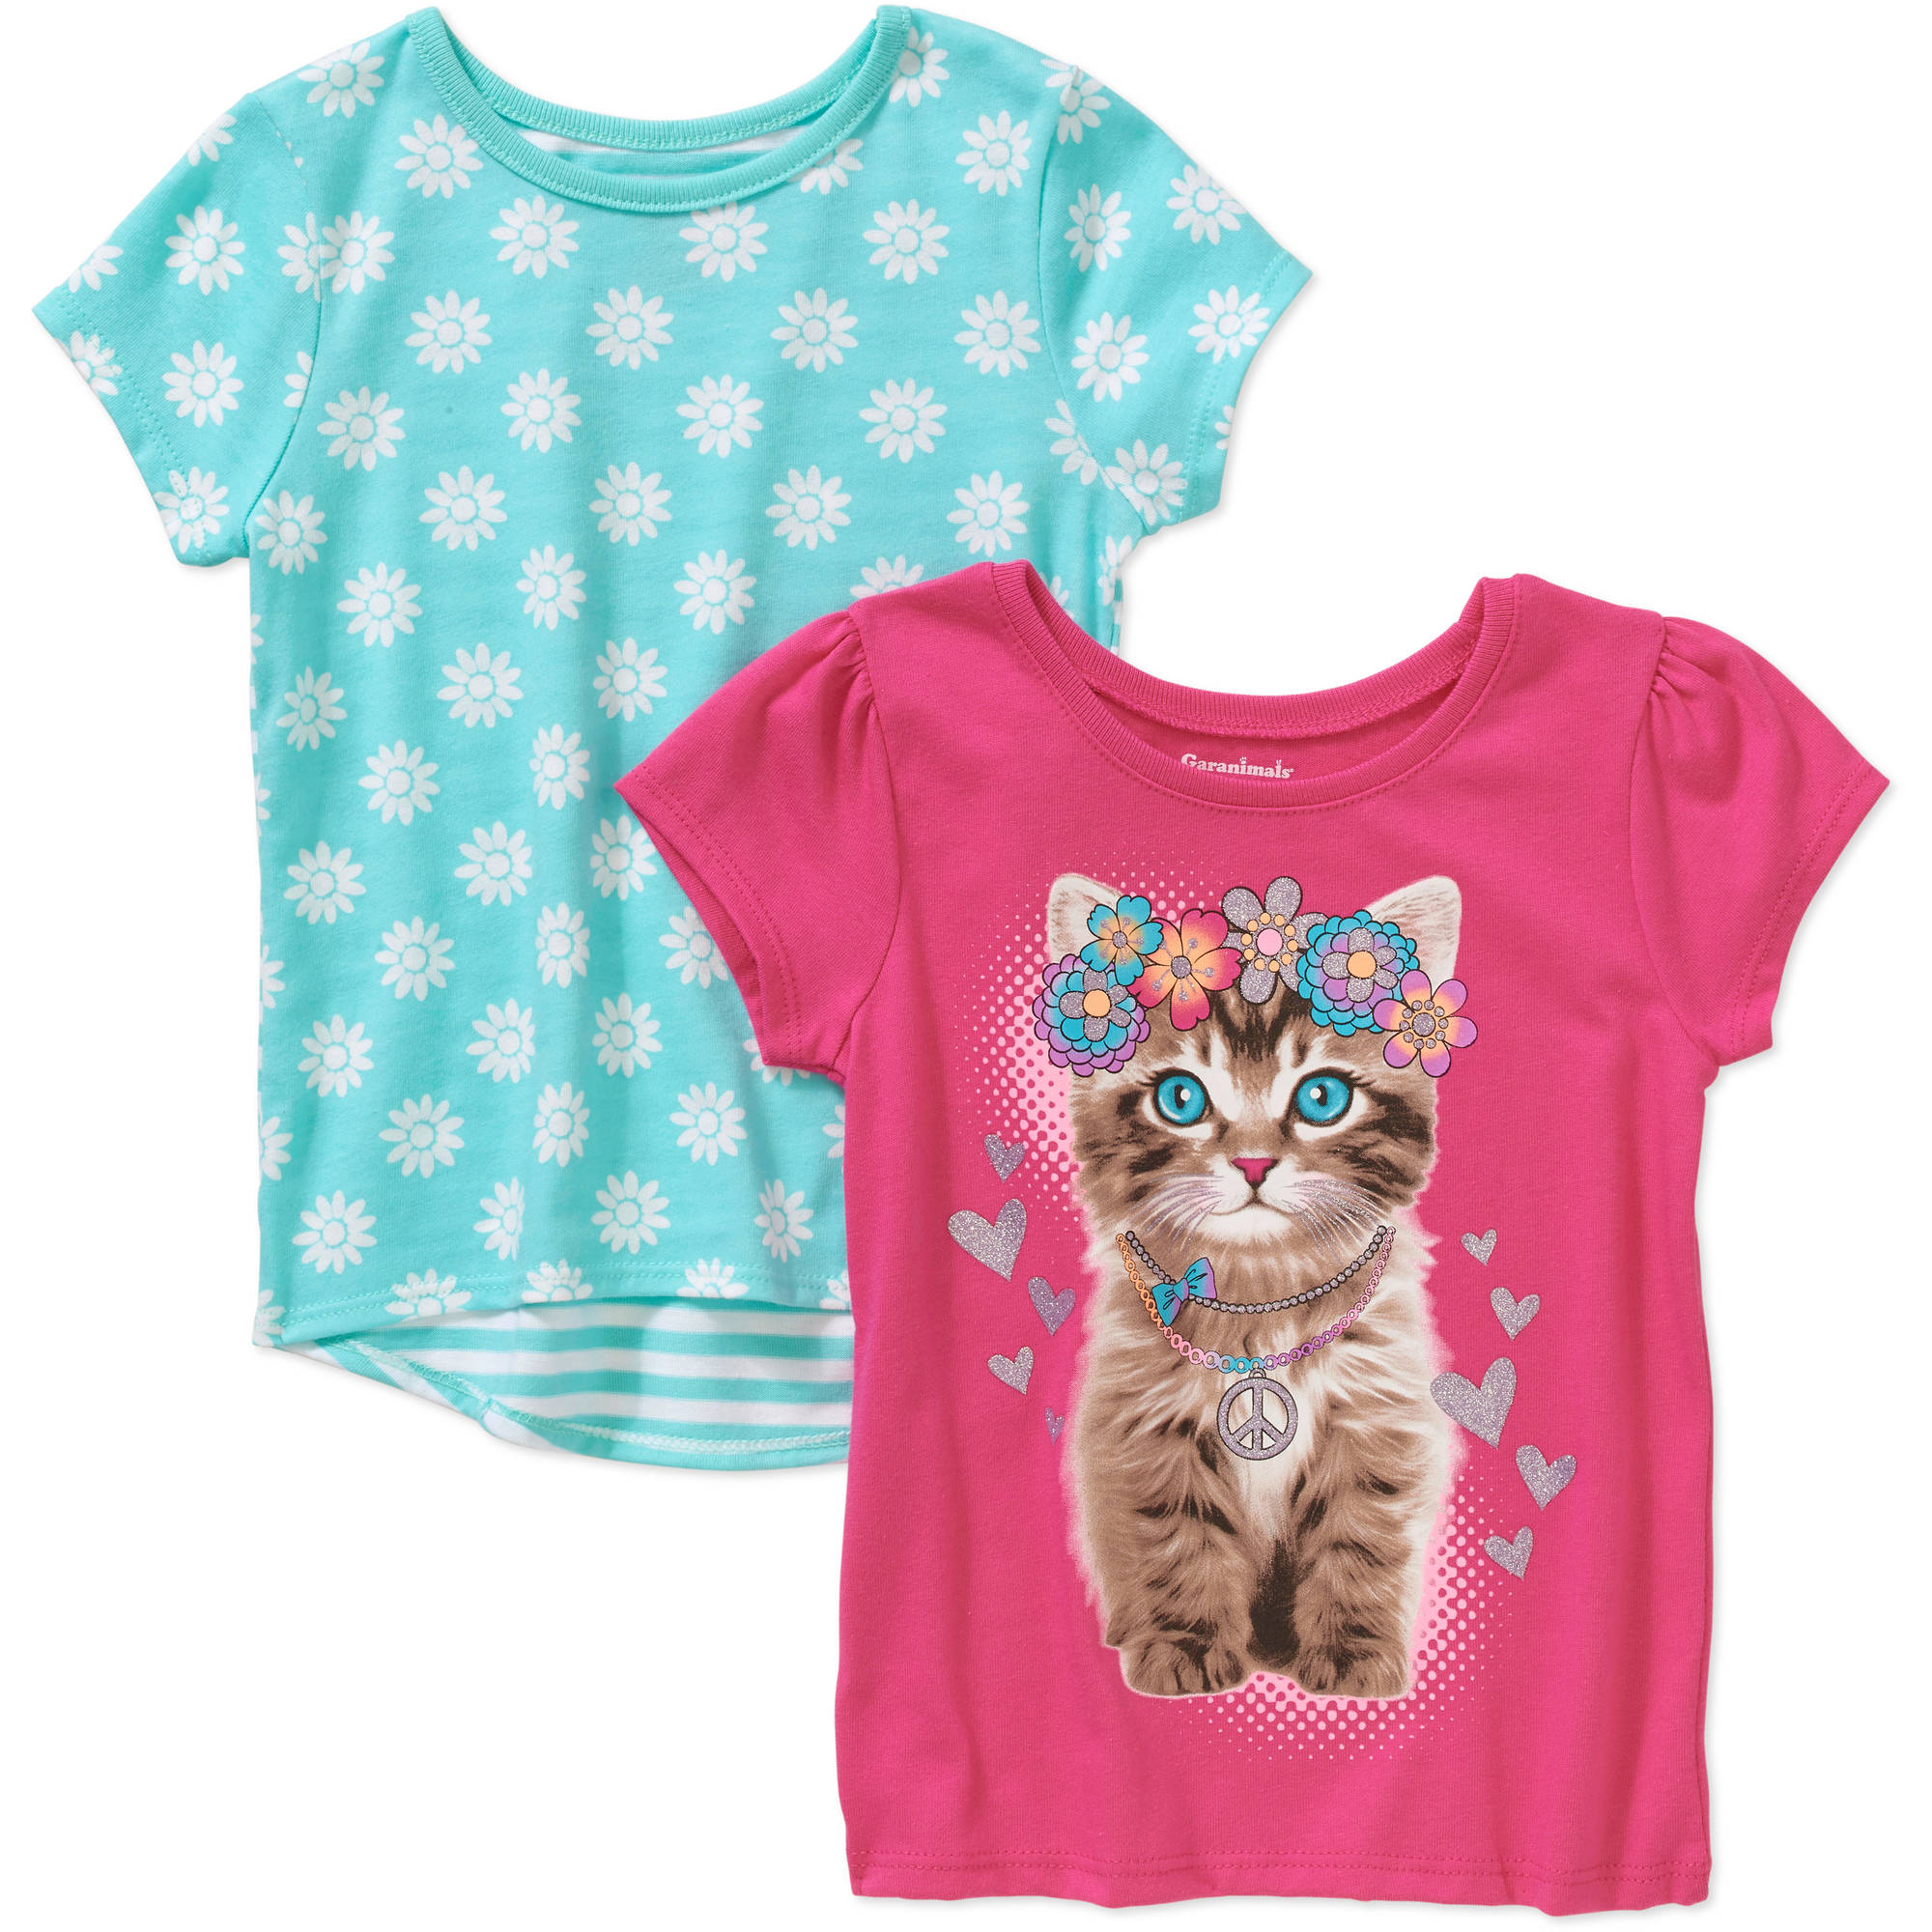 Garanimals Baby Toddler Girl Short Sleeve Graphic Tee & Printed Tee Set